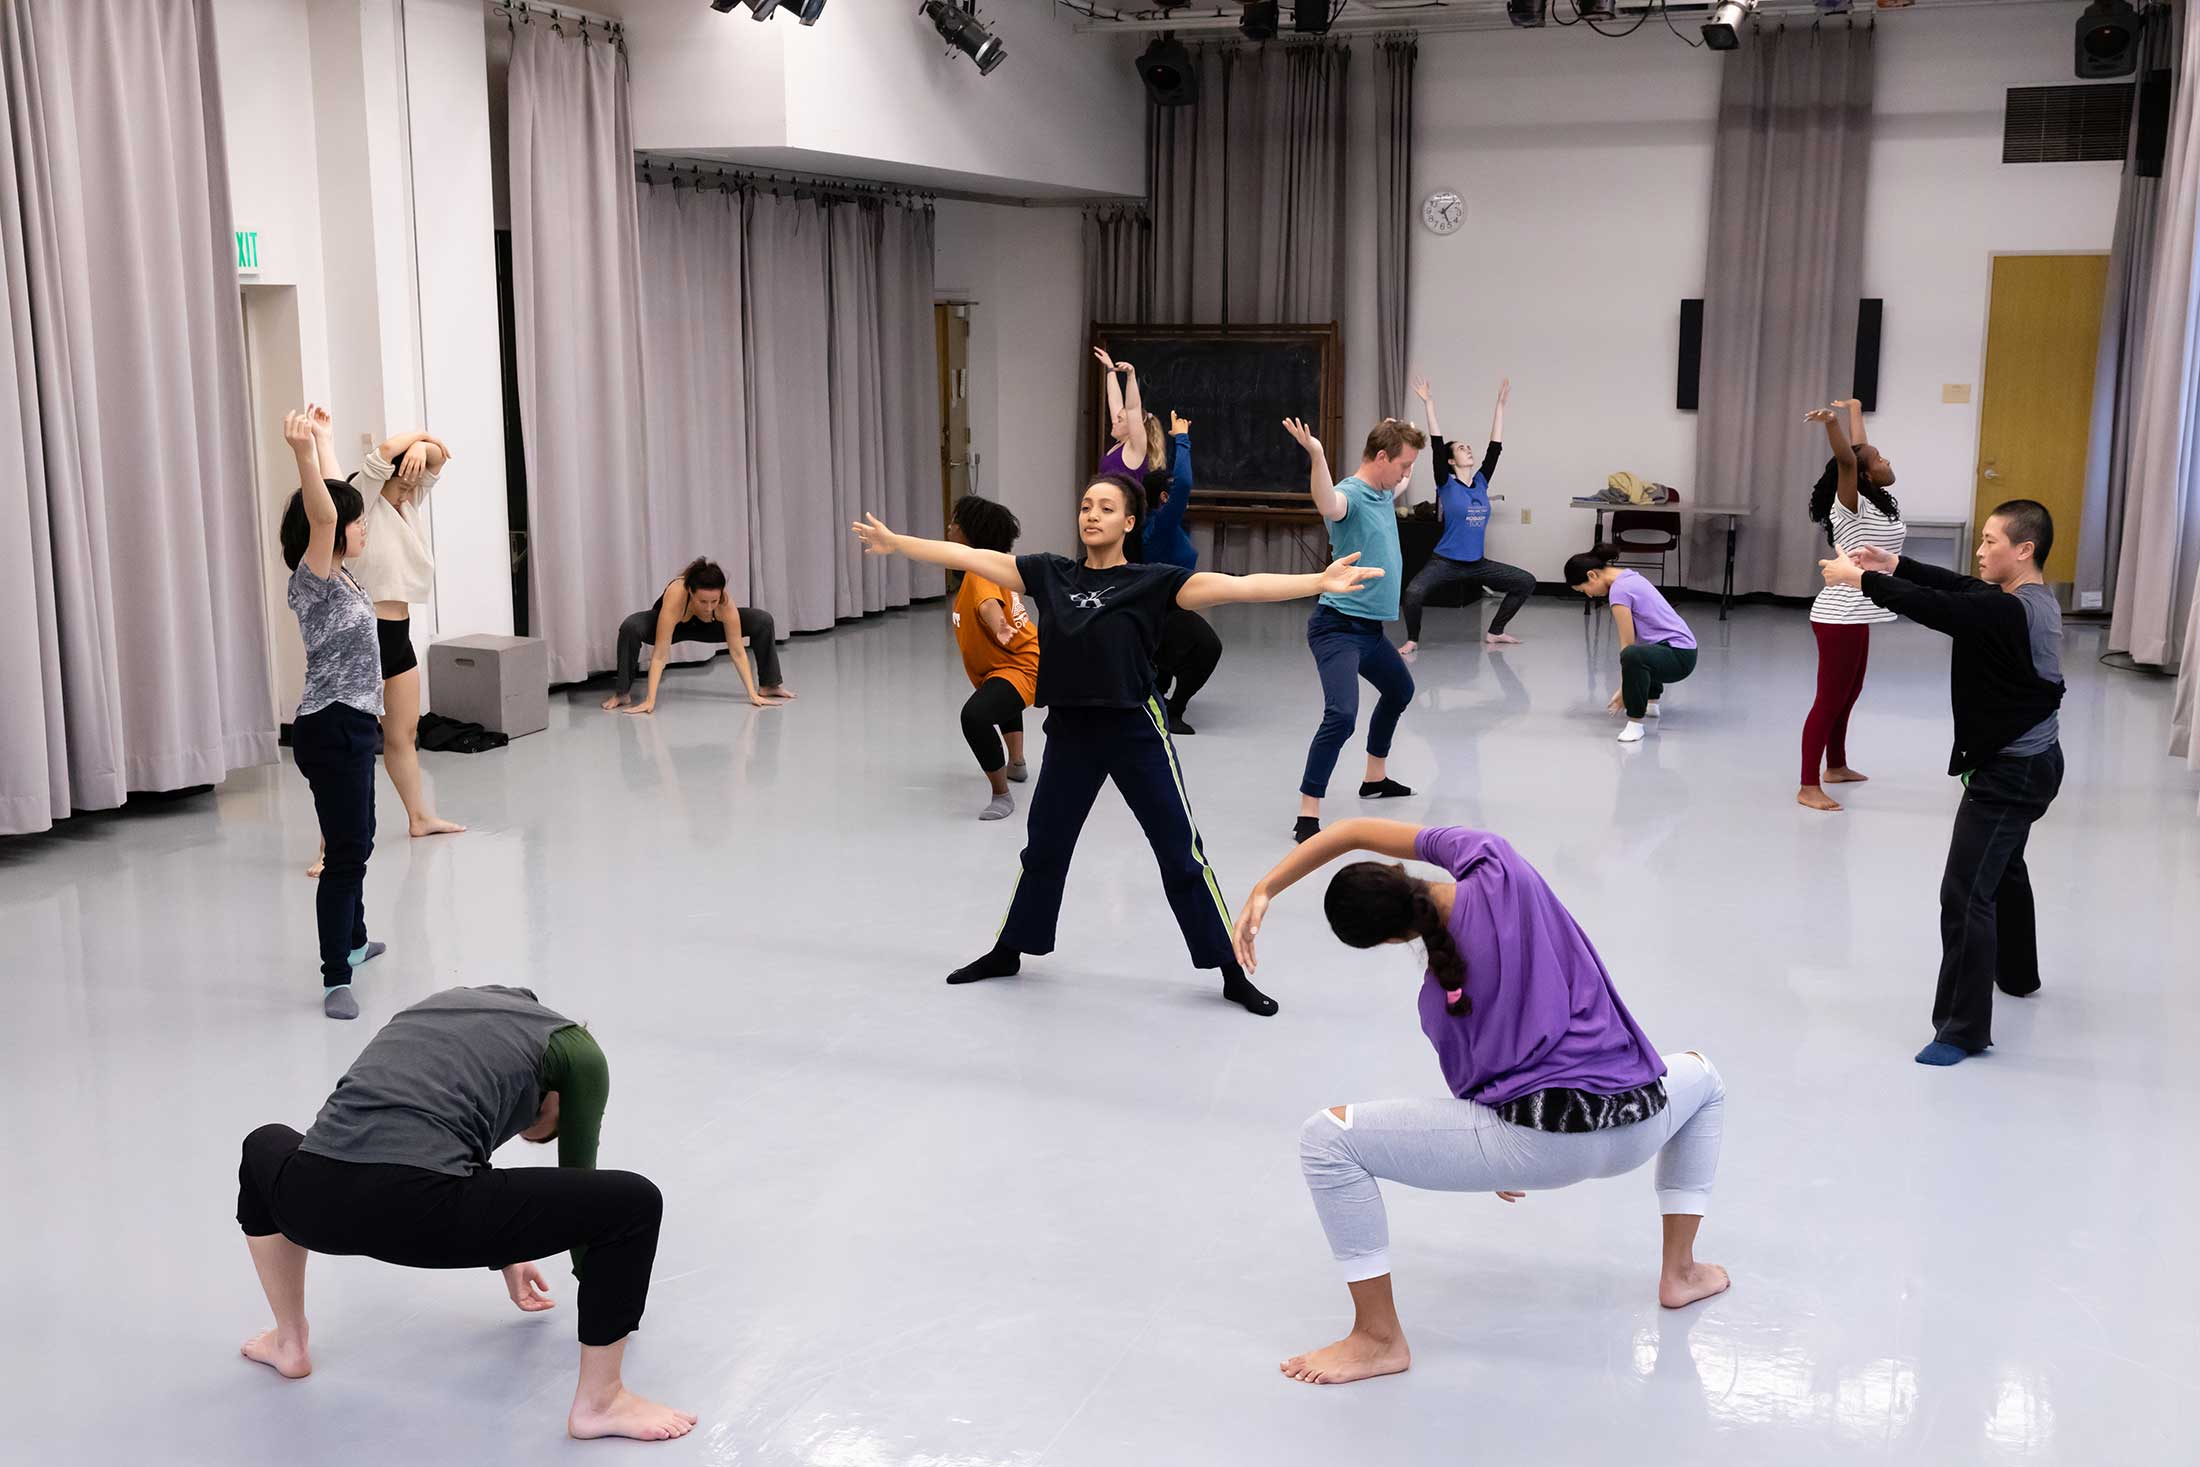 Students warming up for a dance master class